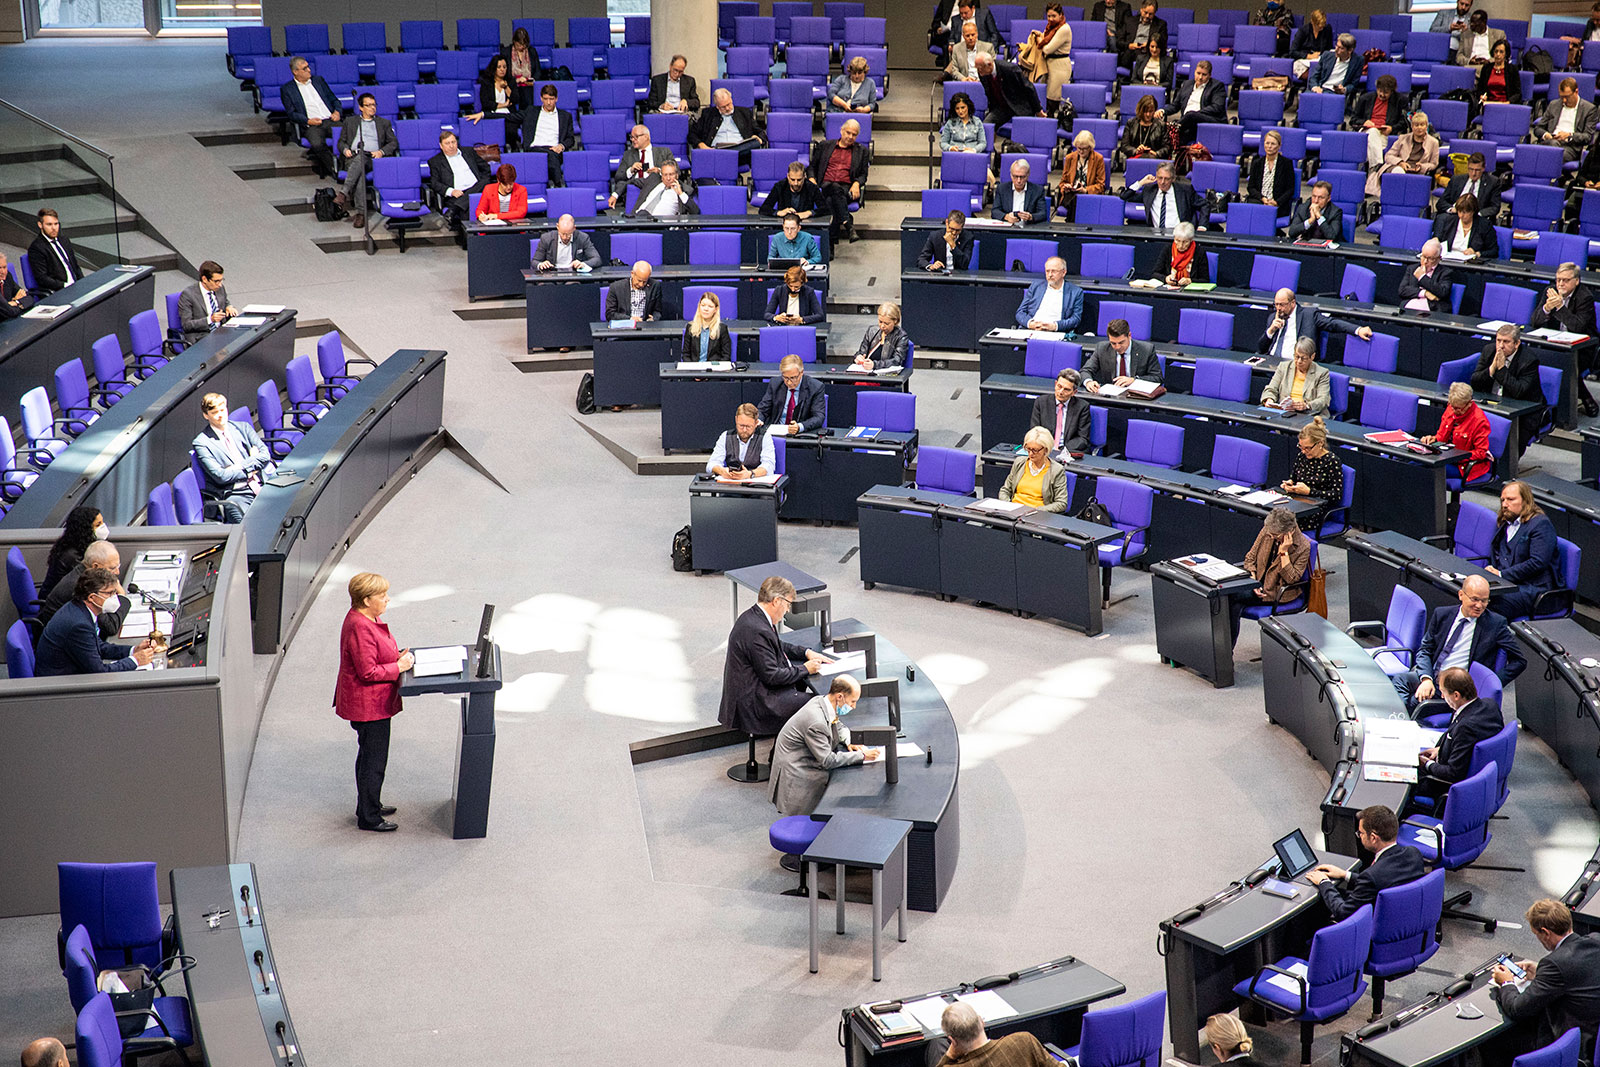 German Chancellor Angela Merkel delivers a speech during a session at the Bundestag on September 30.